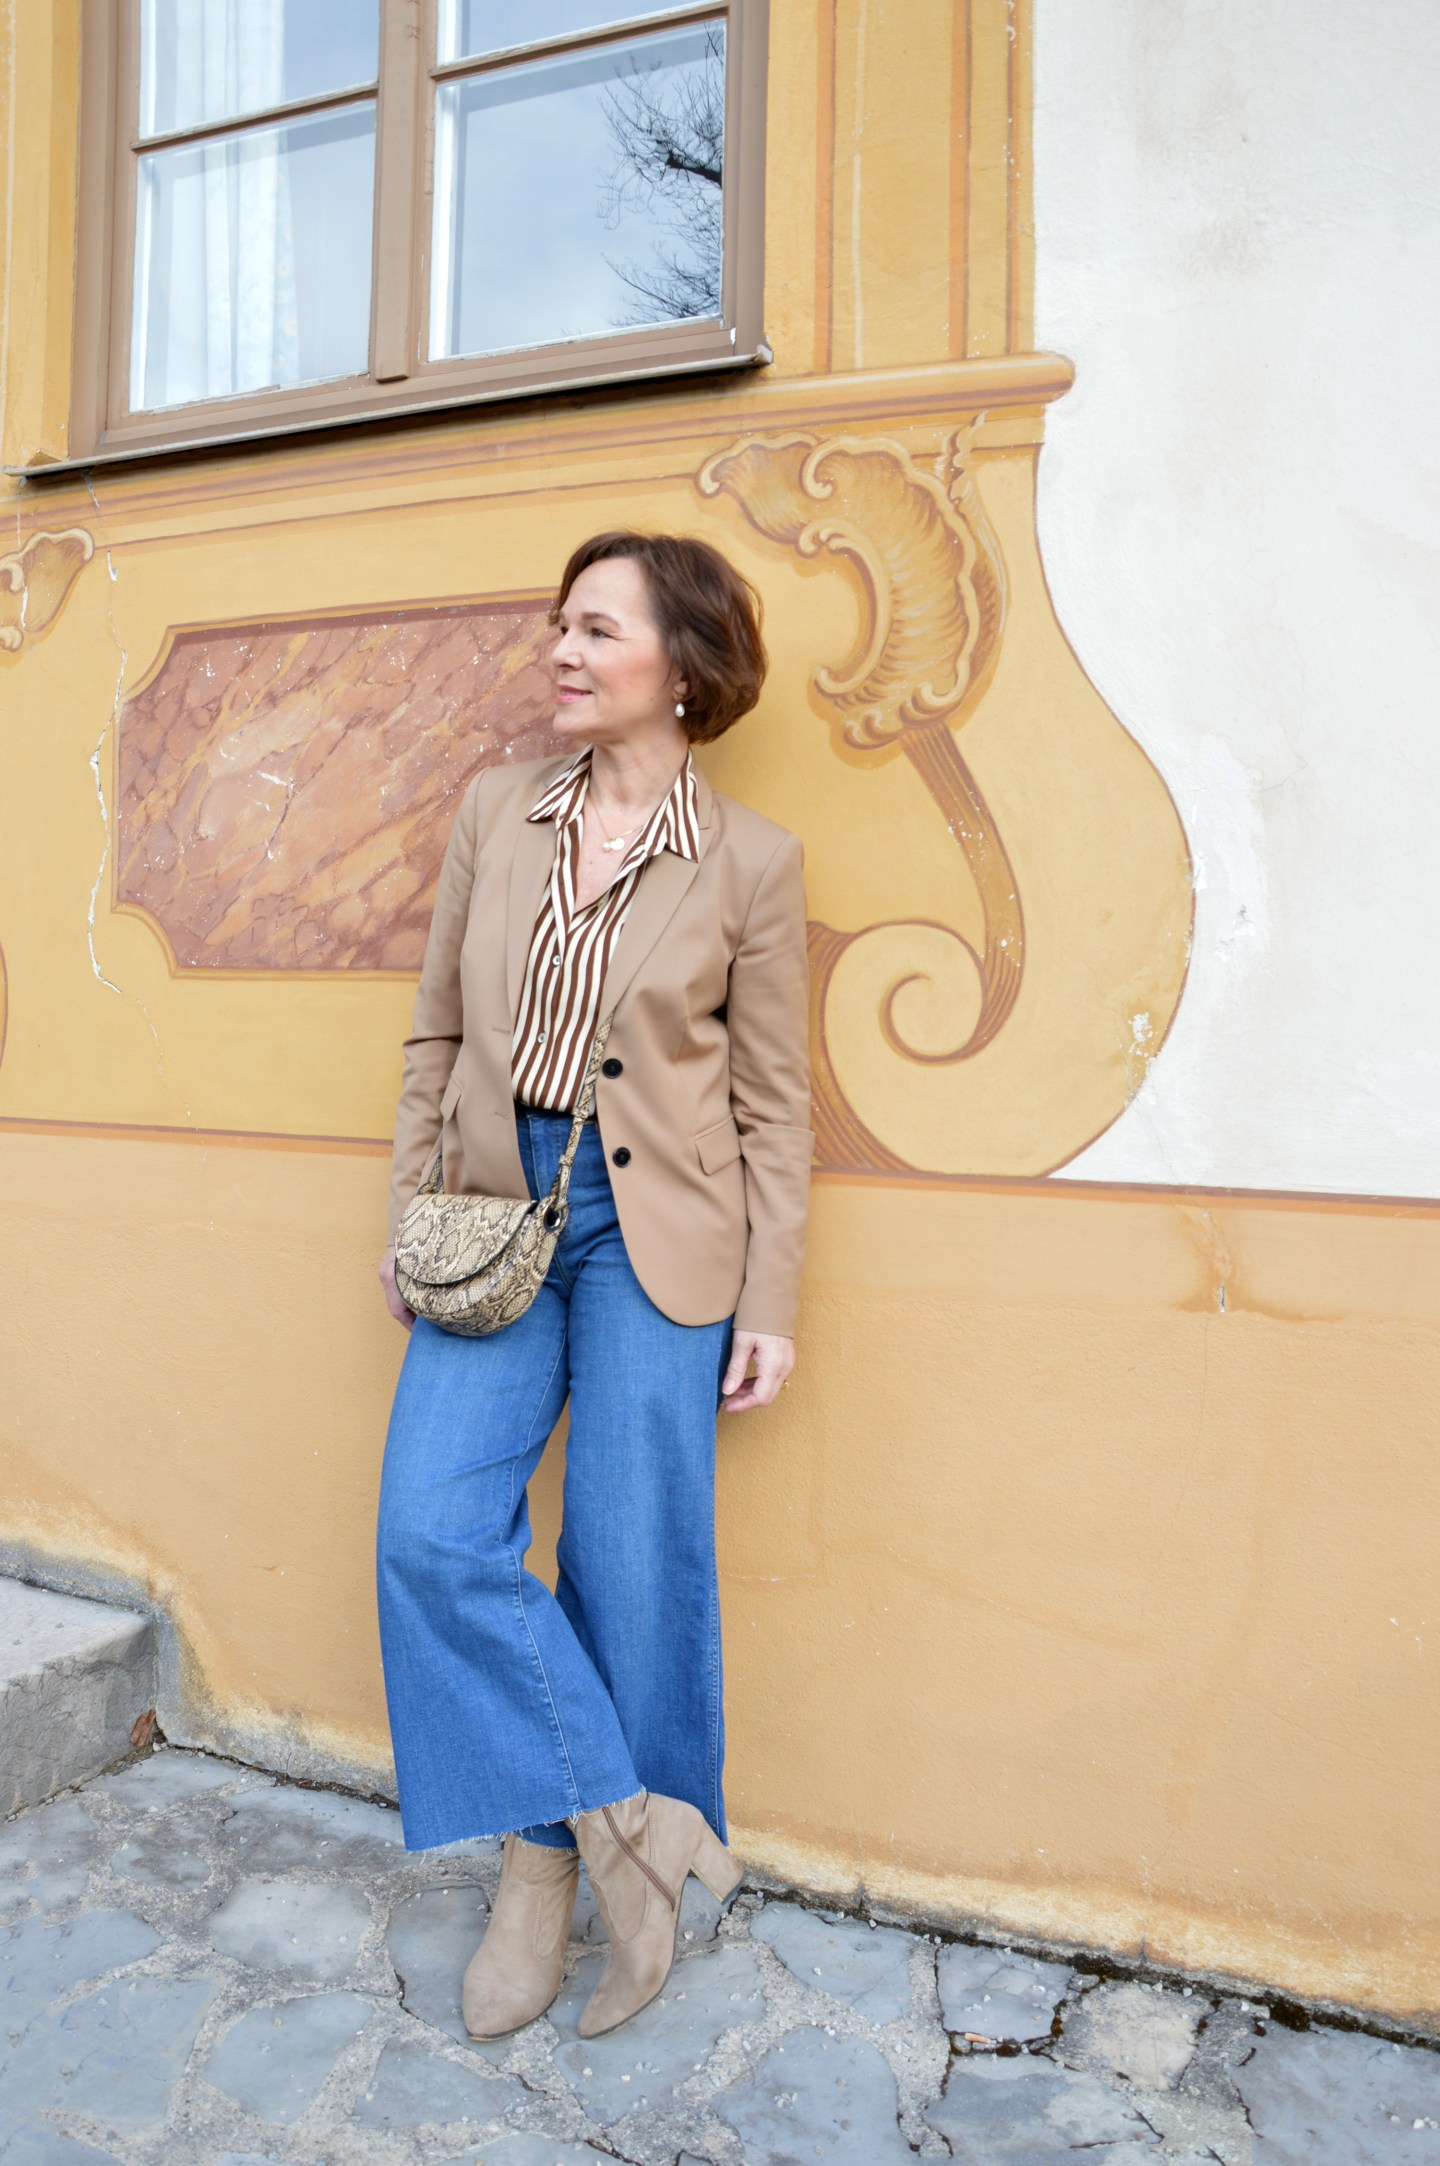 LadyofStyle Jeans Culottes Blazer 50plus Blogger